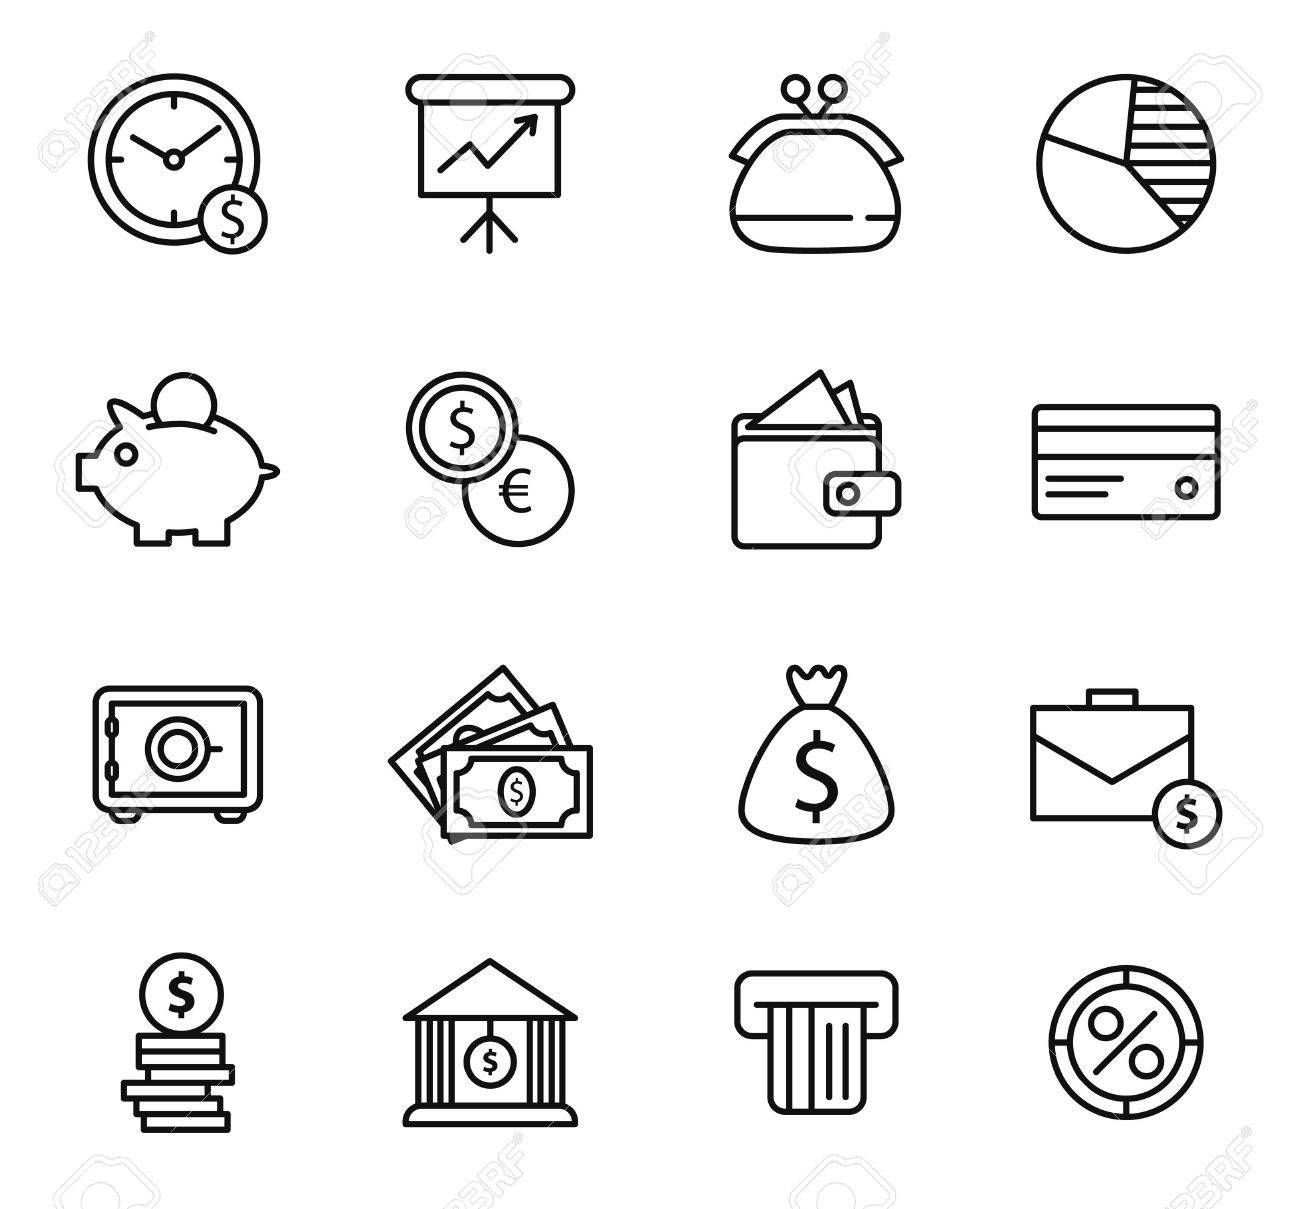 Finance and bank Icon Set. Simple line style black icons